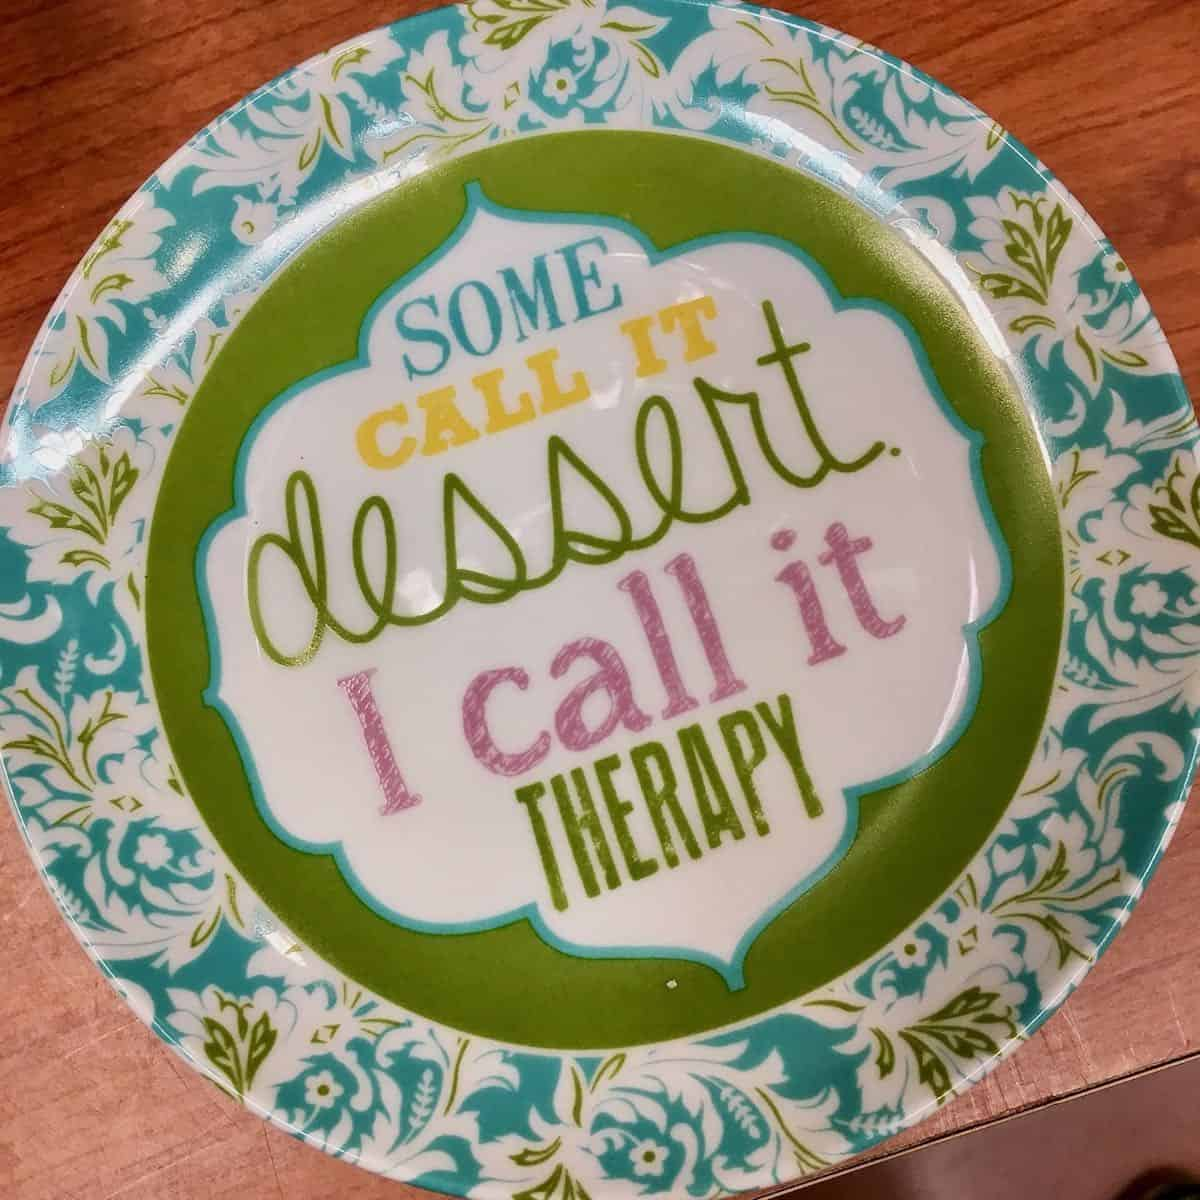 some call it dessert I call it therapy sign